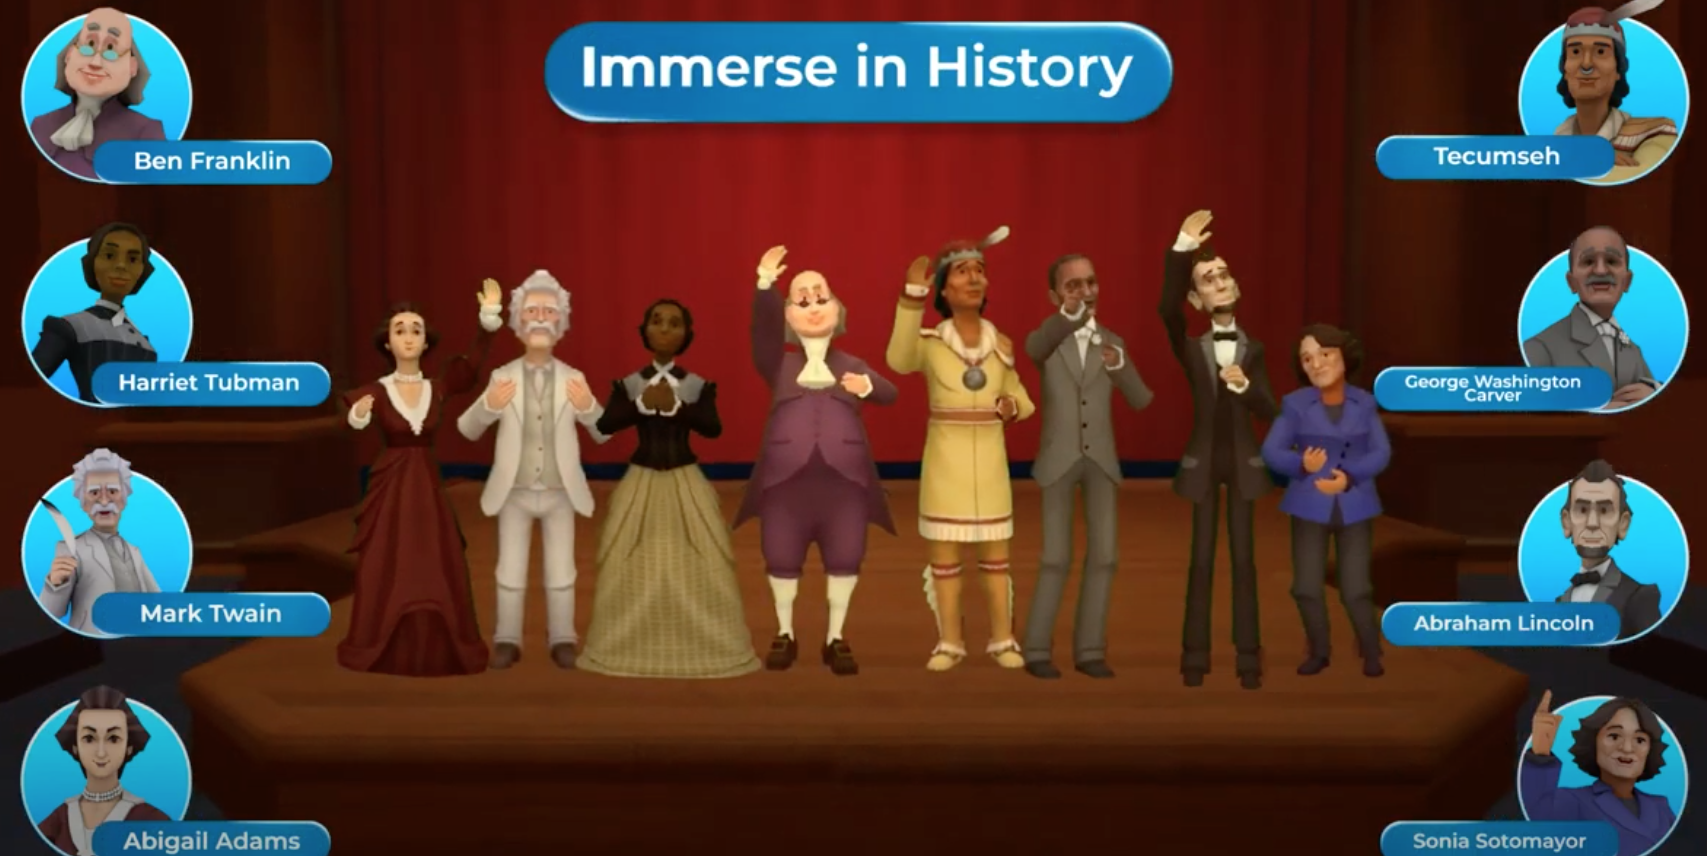 historymaker vr lesson interface with historical figures